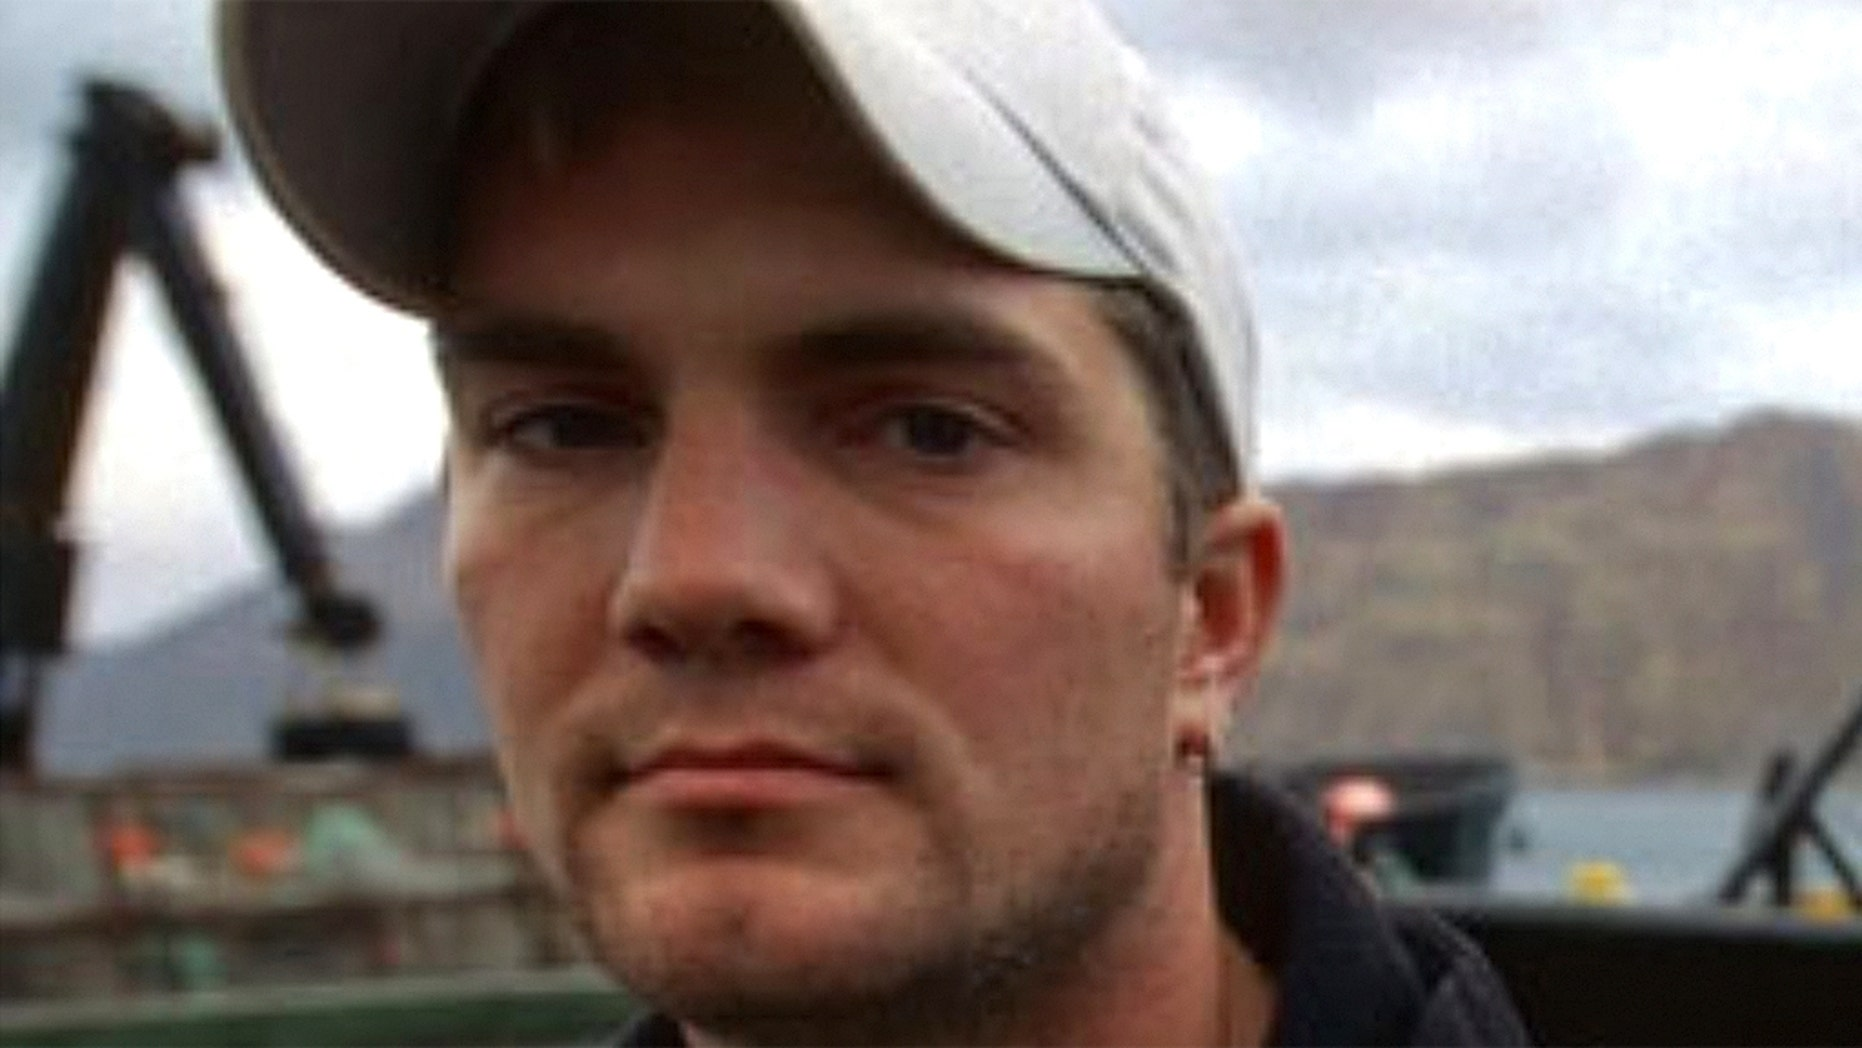 Captain Blake Painter's body was reportedly discovered by law enforcement on Friday, TMZ revealed.